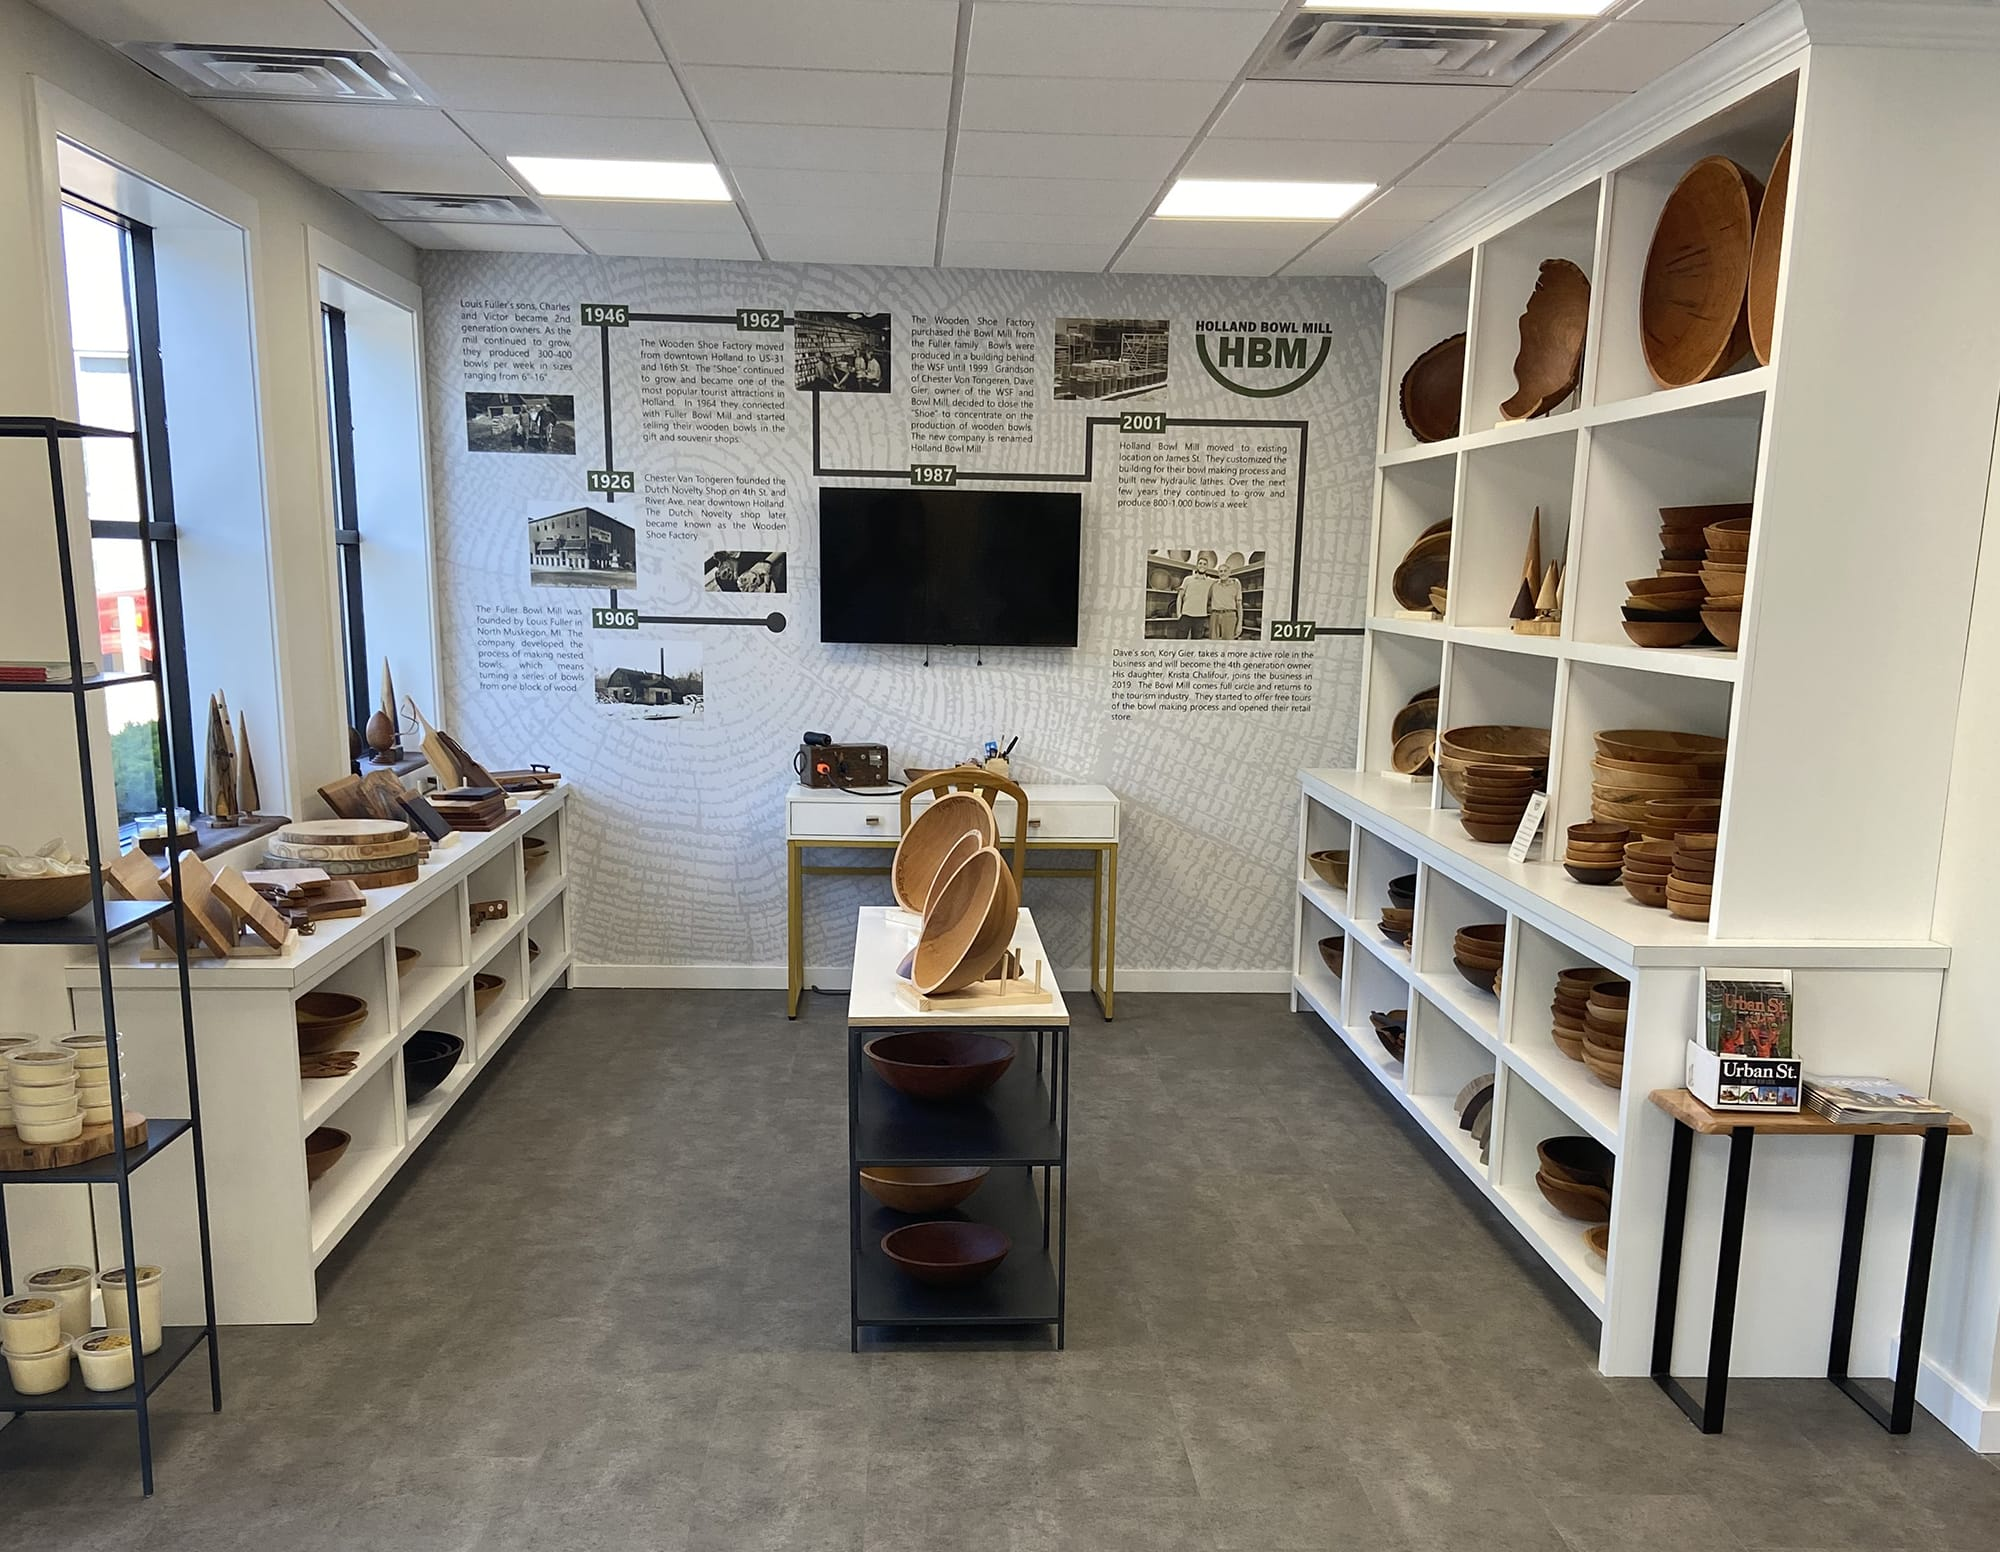 Bowl Showroom. Where to Buy Wooden Bowls. Holland Bowl Mill Showroom